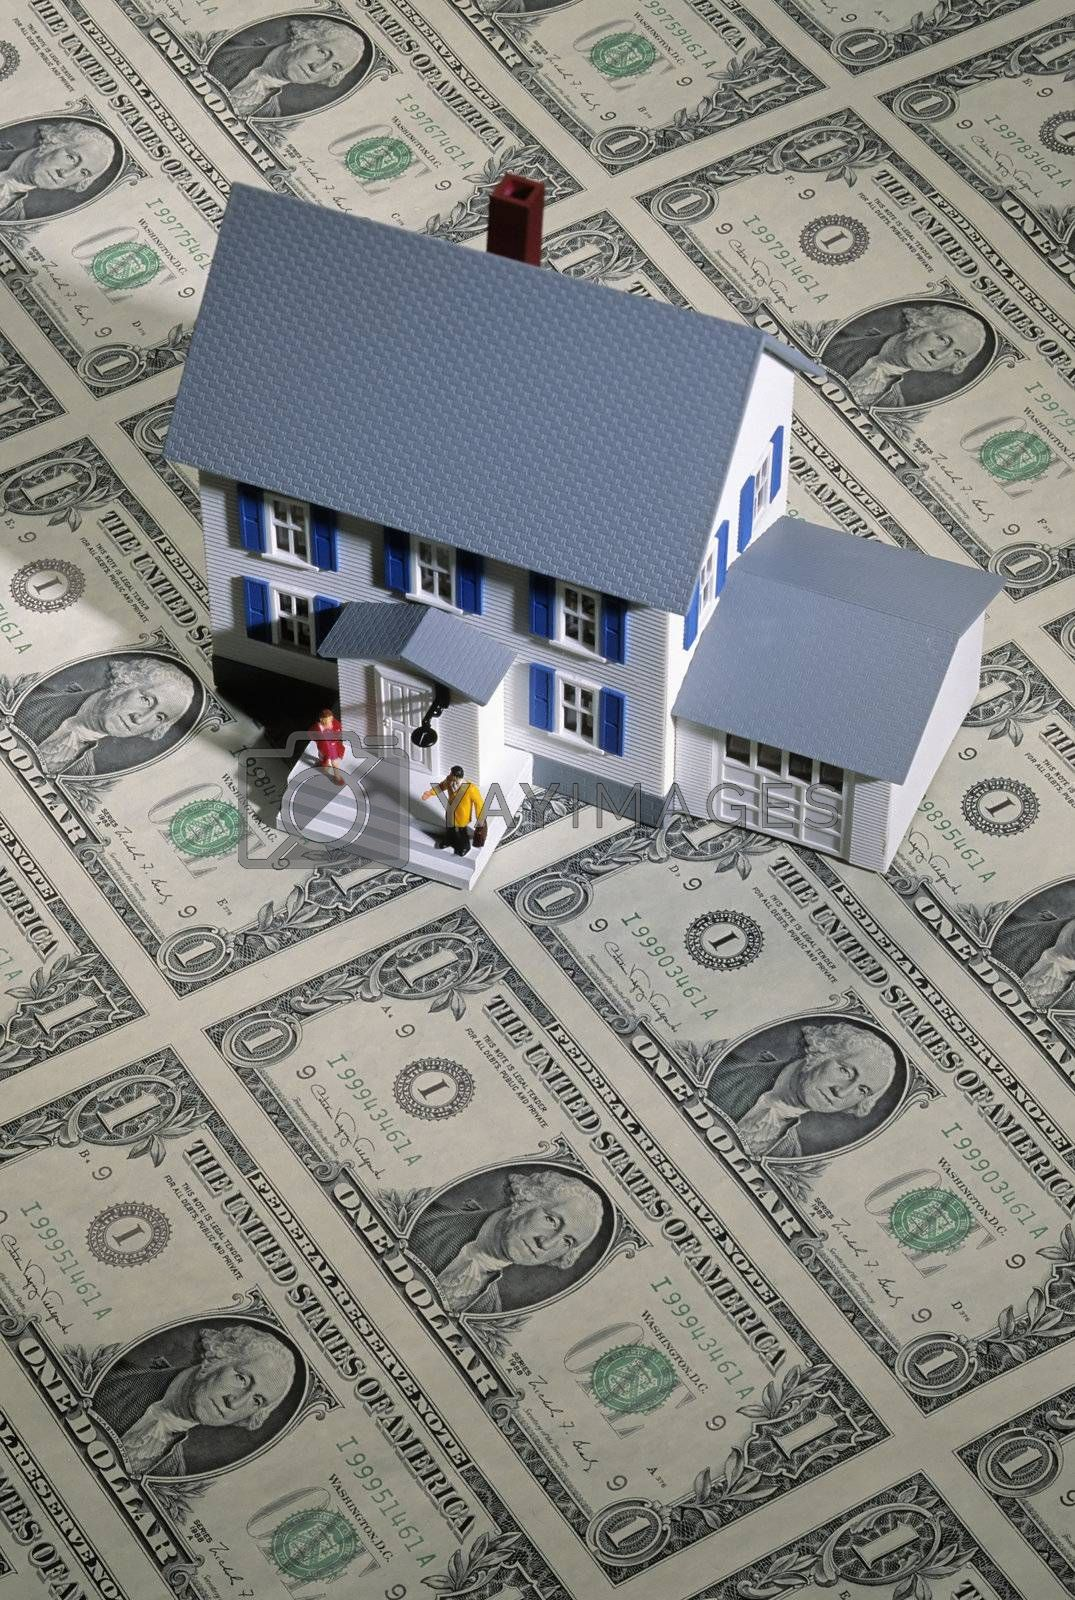 Royalty free image of Toy house on money by edbockstock